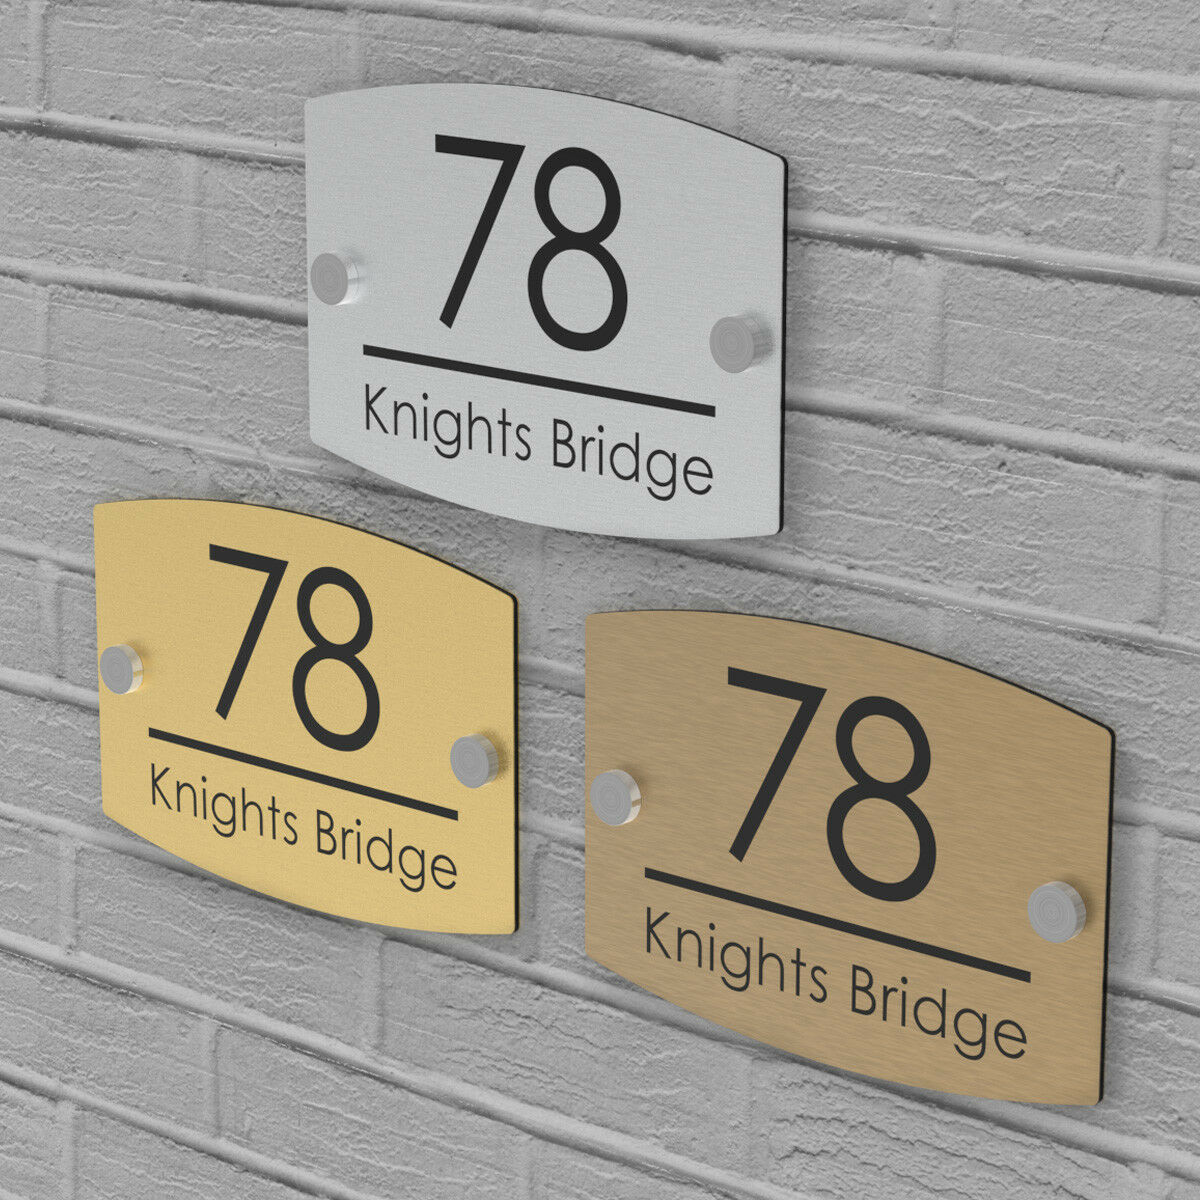 Customize House Number Plaques Door Sign Street Name Wall Plate - Gold Silver